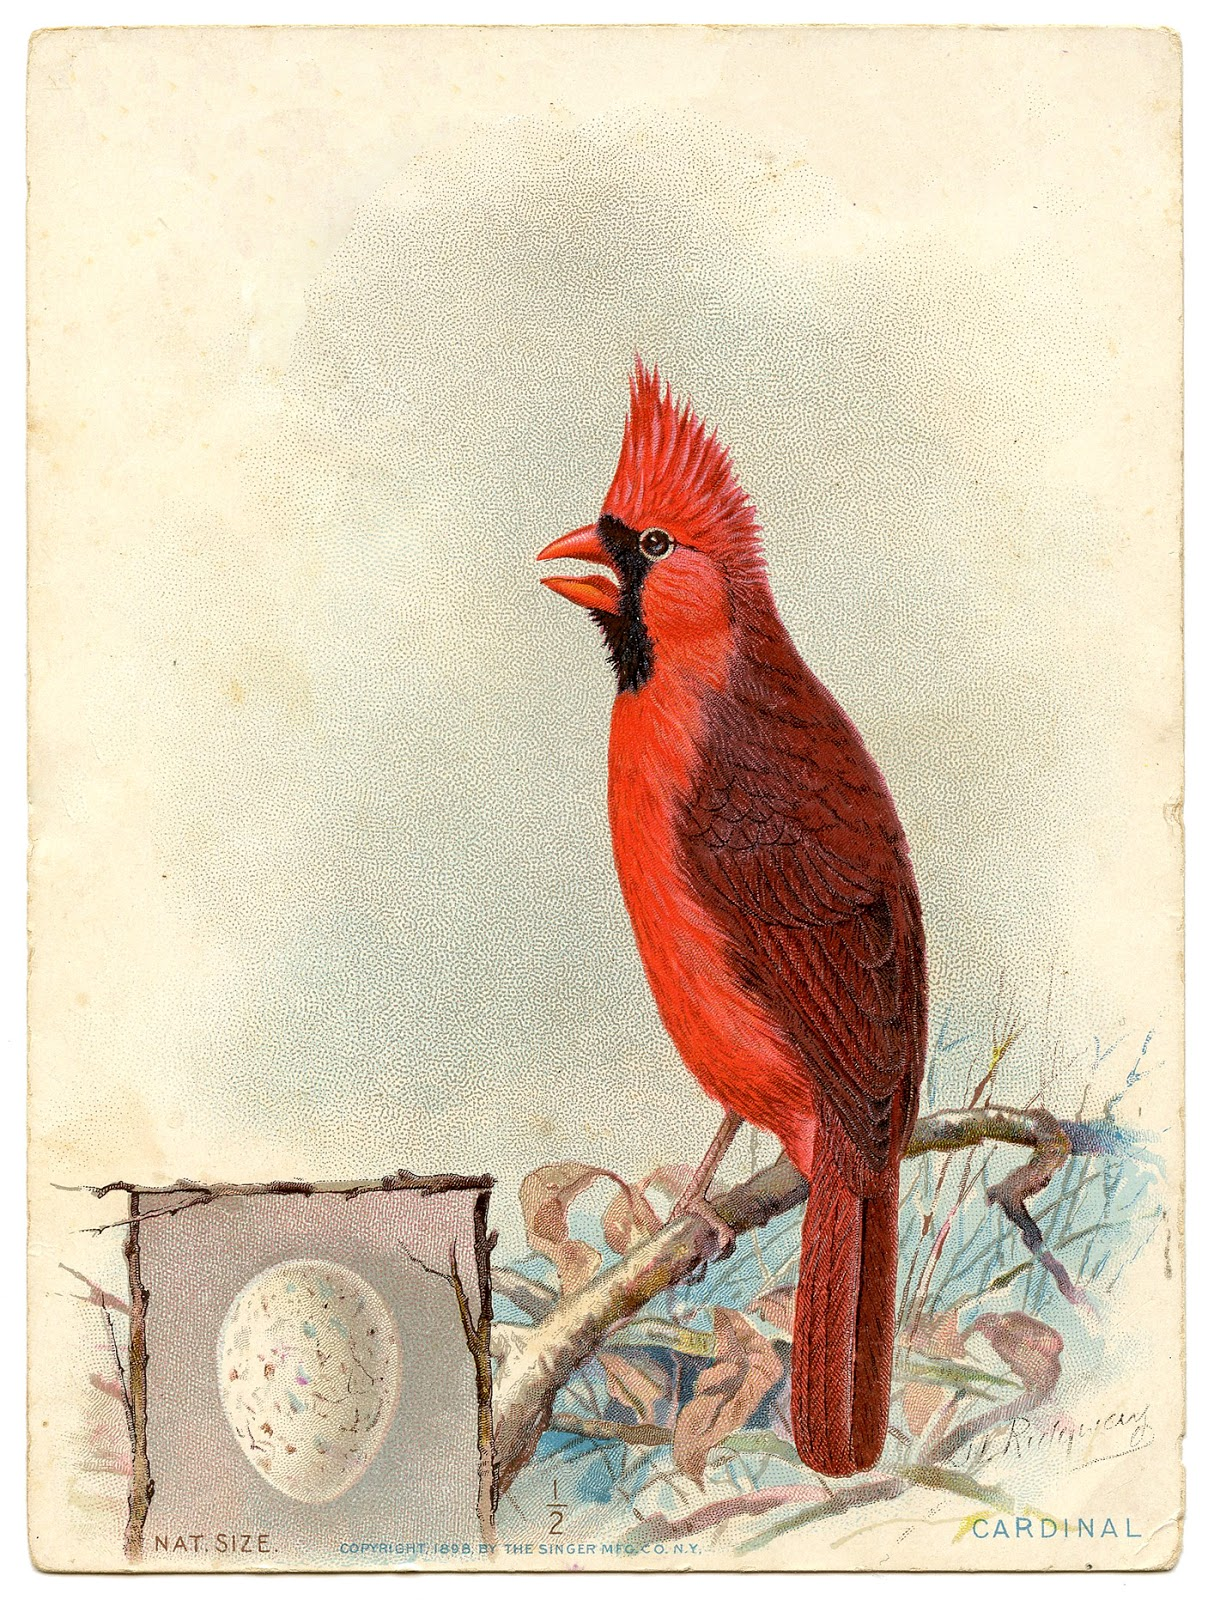 Old Advertising Image Red Cardinal With Egg The